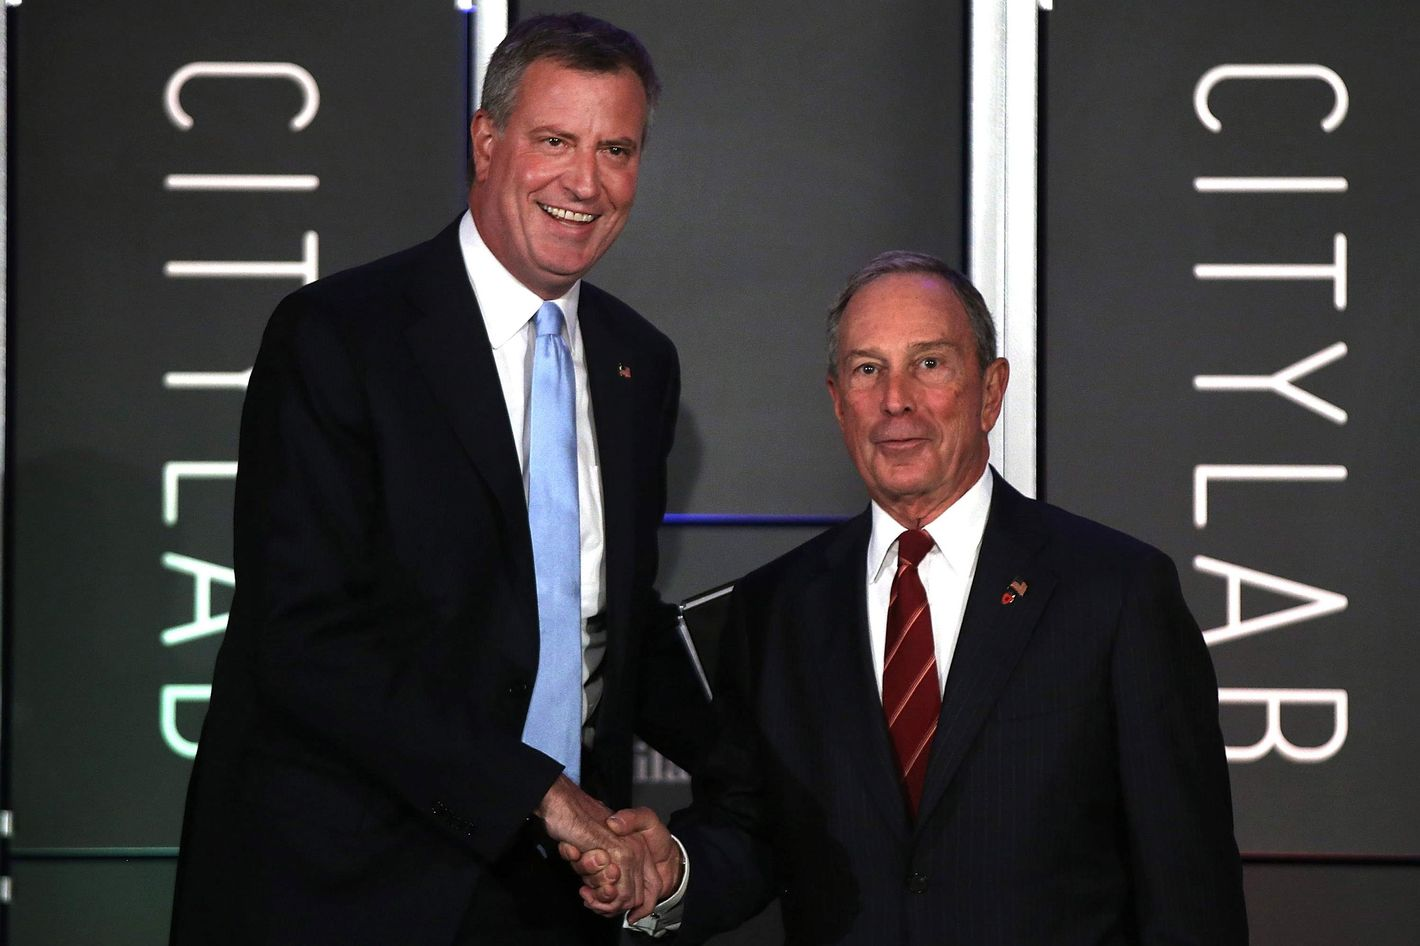 "Democratic nominee for New York Mayor Bill de Blasio (L) appears on stage with current New York Mayor Michael Bloomberg at ""CityLab: Urban Solutions to Global Challenges,"" an event sponsored by The Atlantic, The Aspen Institute, and Bloomberg Philanthropies on October 8, 2013 in New York City. The event, which took place on October 6-8, brought together 300 global city leaders, city planners, scholars, architects, artists and others for a symposium on urban ideas."